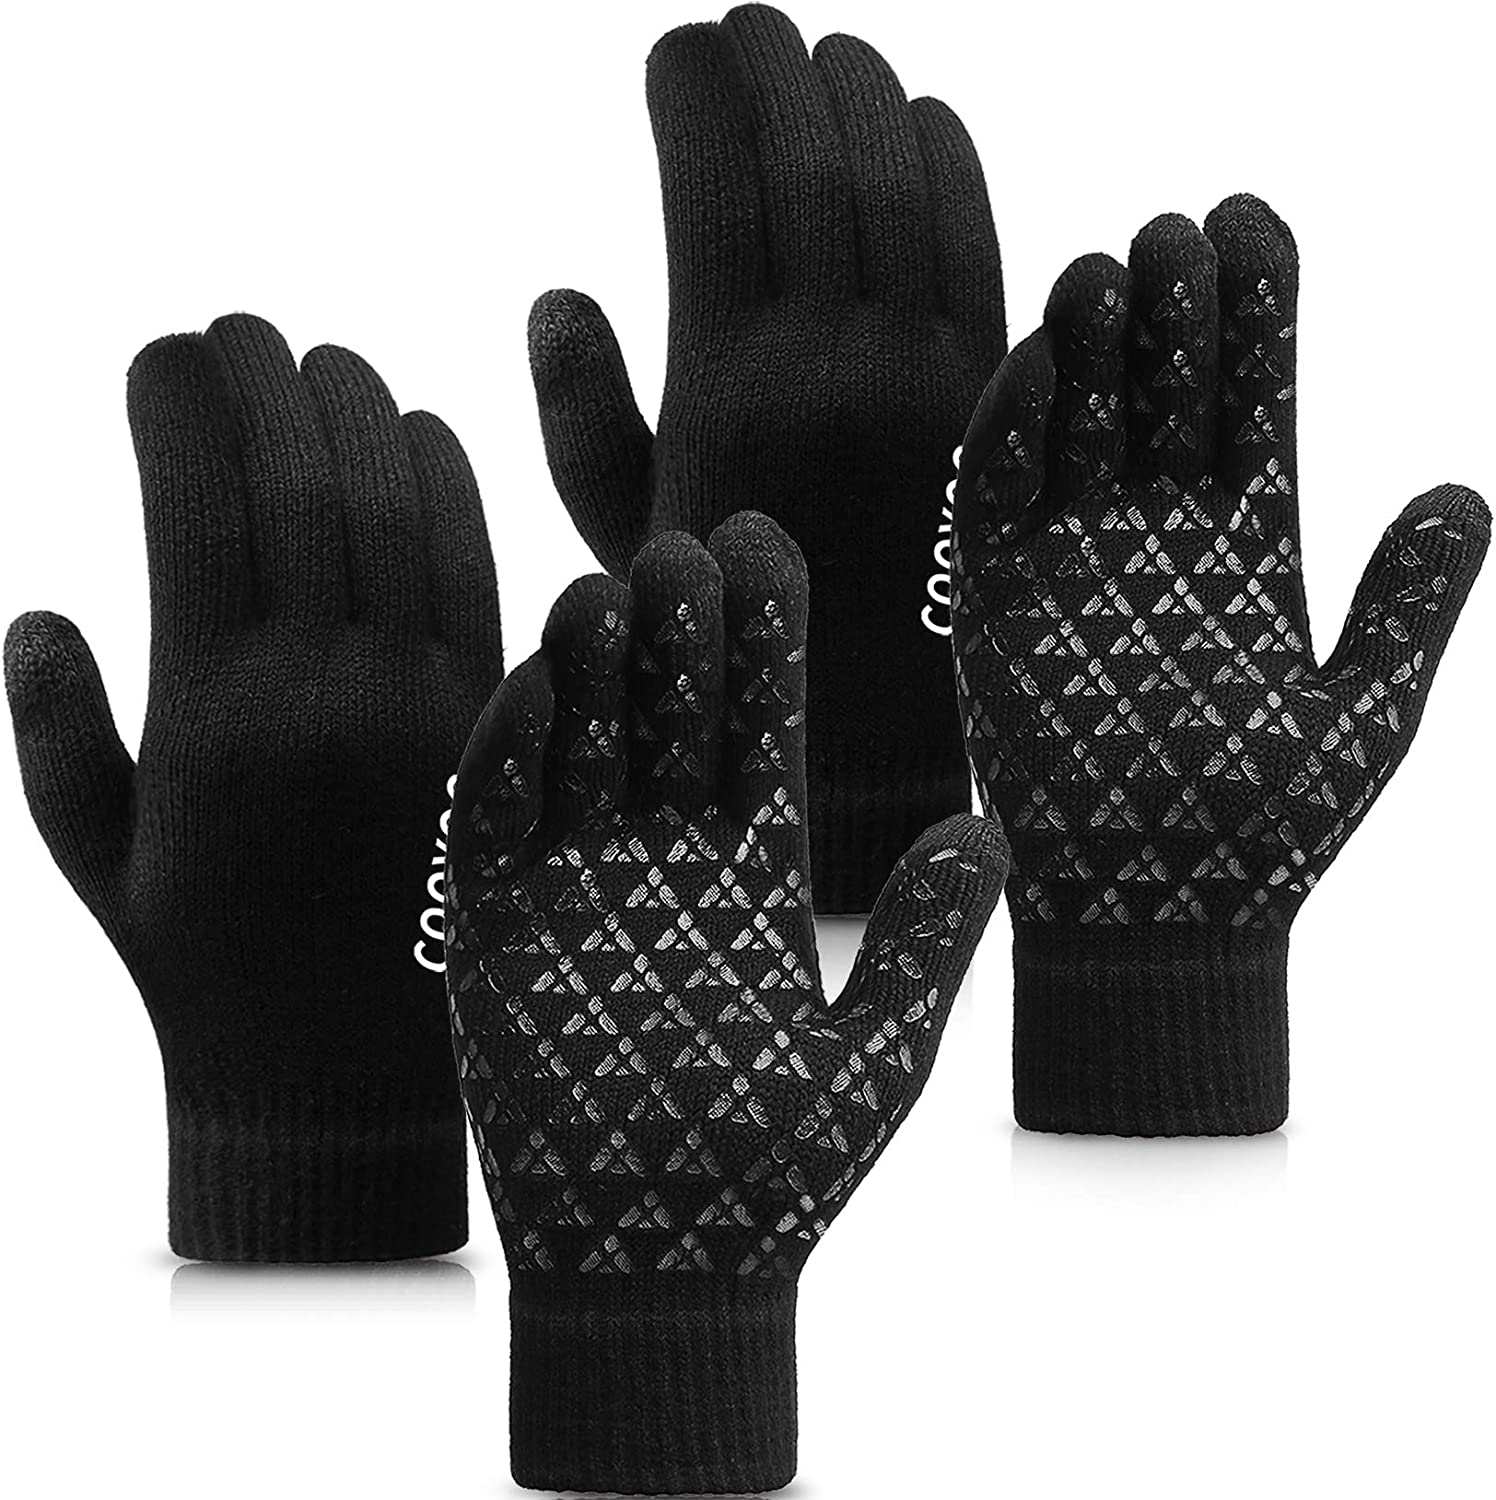 2 Pairs Winter Knit Gloves Touchscreen Thermal Running Texting for Men Women